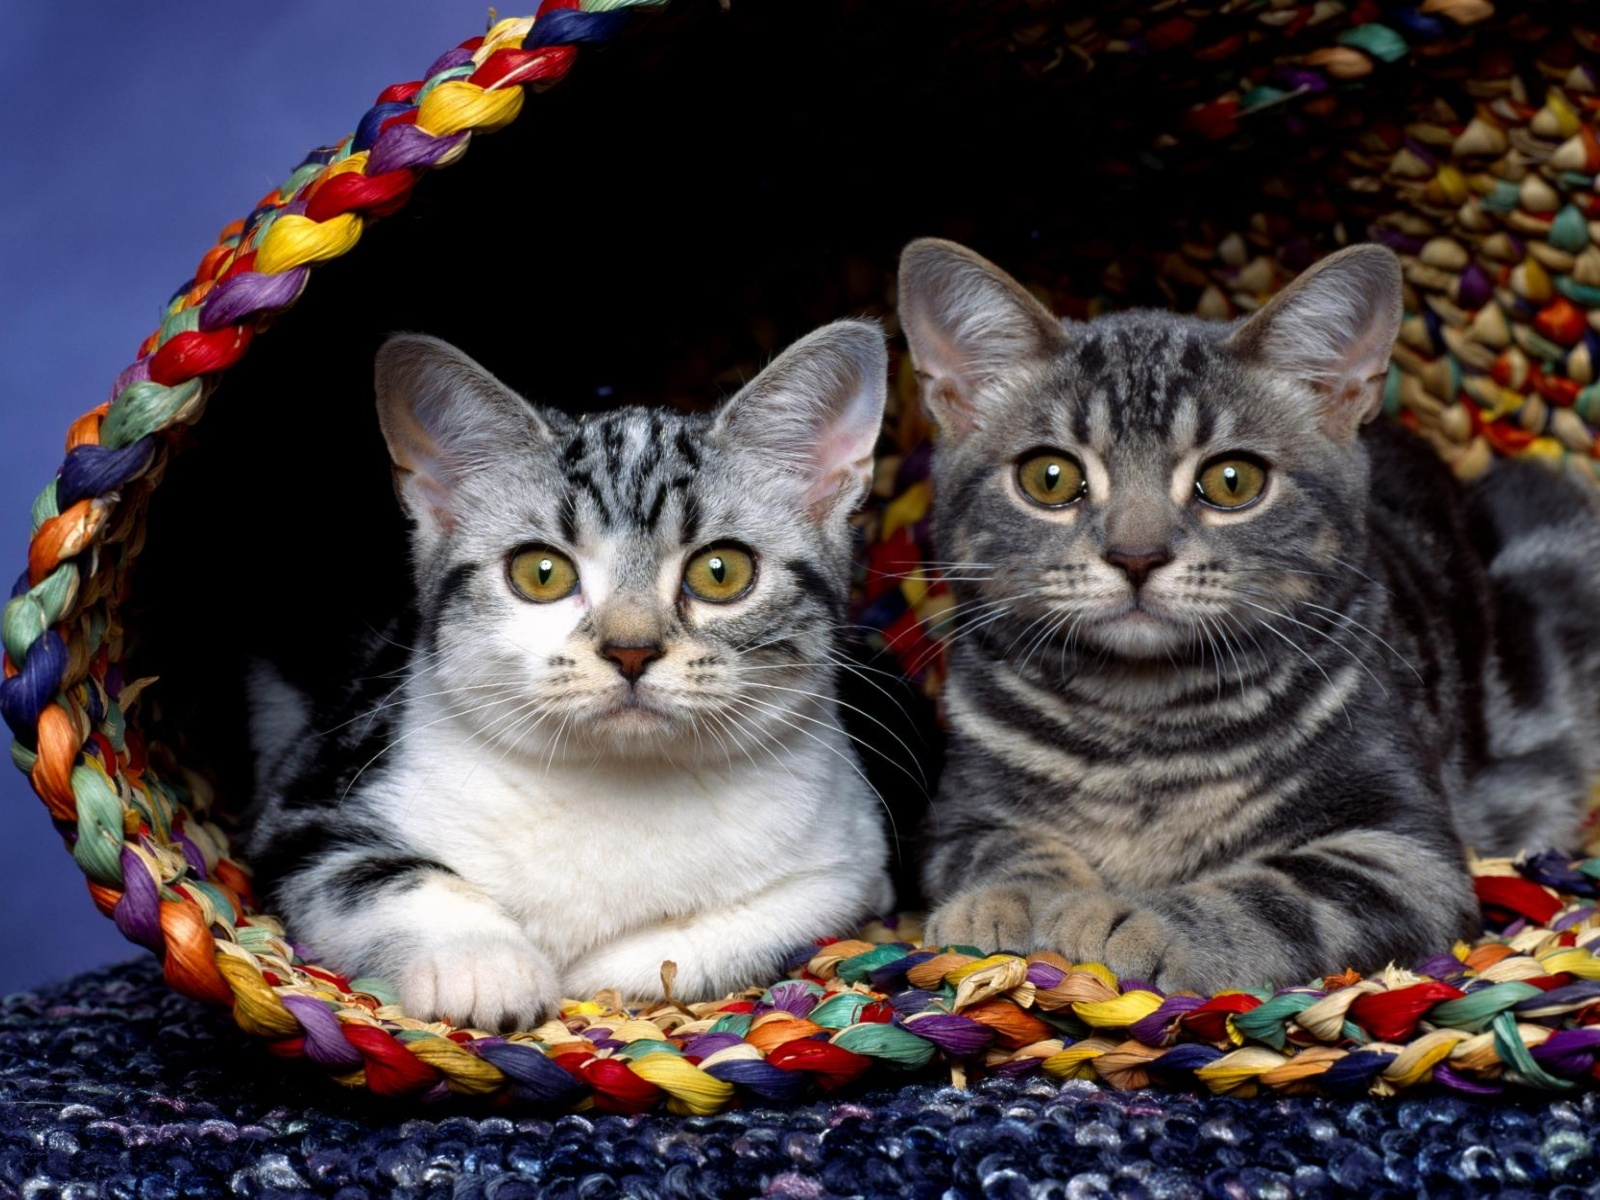 click to free download the wallpaper--Cute Animals Pic, Two Kitties in Basket, Different Colored Furs, Lots of Similarities 1600X1200 free wallpaper download